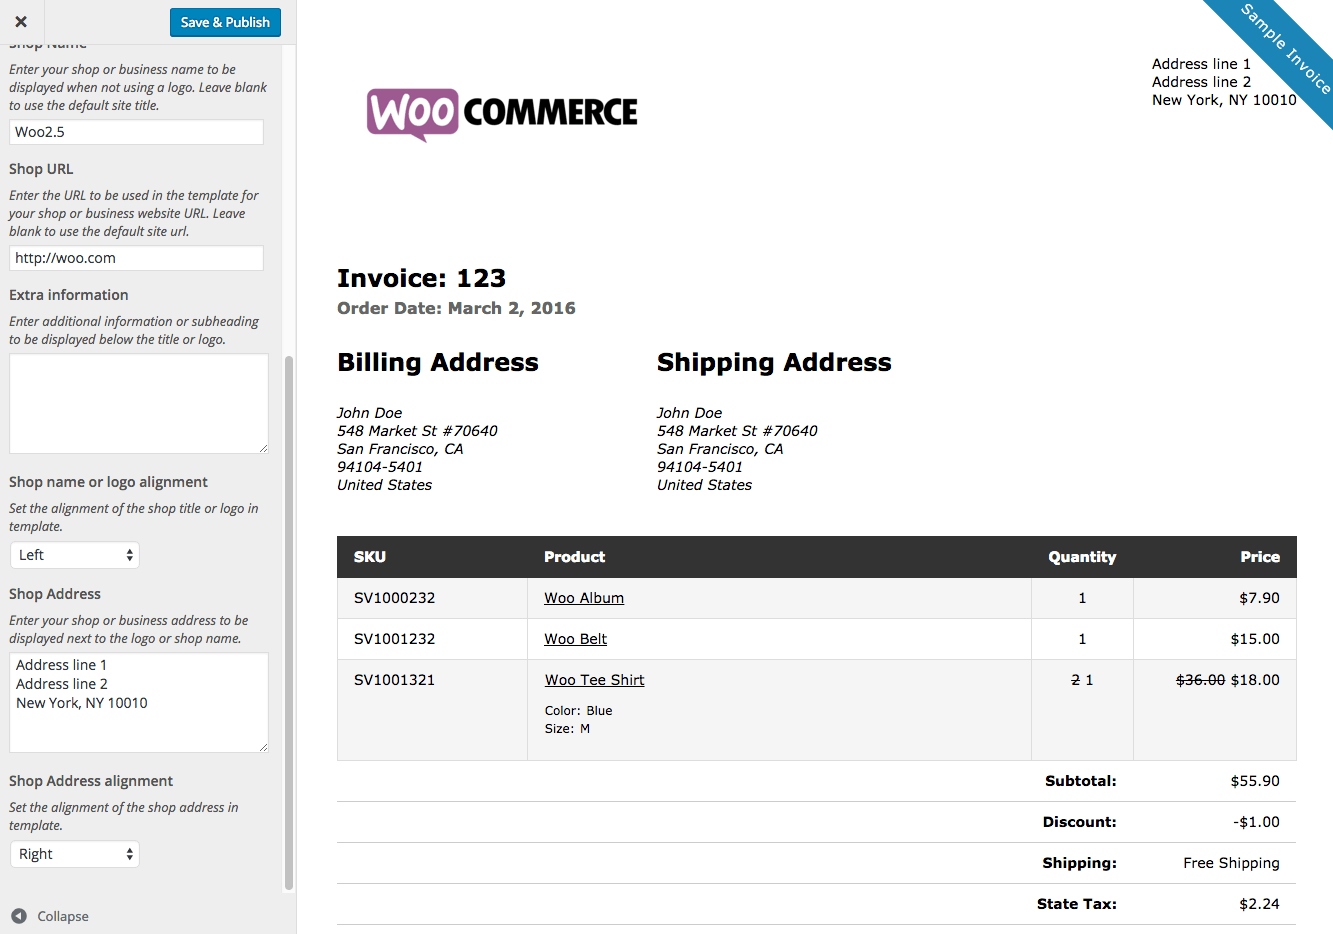 Imagerackus  Winning Woocommerce Print Invoices Amp Packing Lists  Woocommerce Docs With Interesting Woocommerce Print Invoices  Packing Lists Customizer With Lovely Rent Receipt Format Pdf Also Tow Truck Receipt Template In Addition Sales Receipt Store And Money Rent Receipt As Well As Mo Property Tax Receipt Additionally Free Printable Sales Receipts From Docswoocommercecom With Imagerackus  Interesting Woocommerce Print Invoices Amp Packing Lists  Woocommerce Docs With Lovely Woocommerce Print Invoices  Packing Lists Customizer And Winning Rent Receipt Format Pdf Also Tow Truck Receipt Template In Addition Sales Receipt Store From Docswoocommercecom